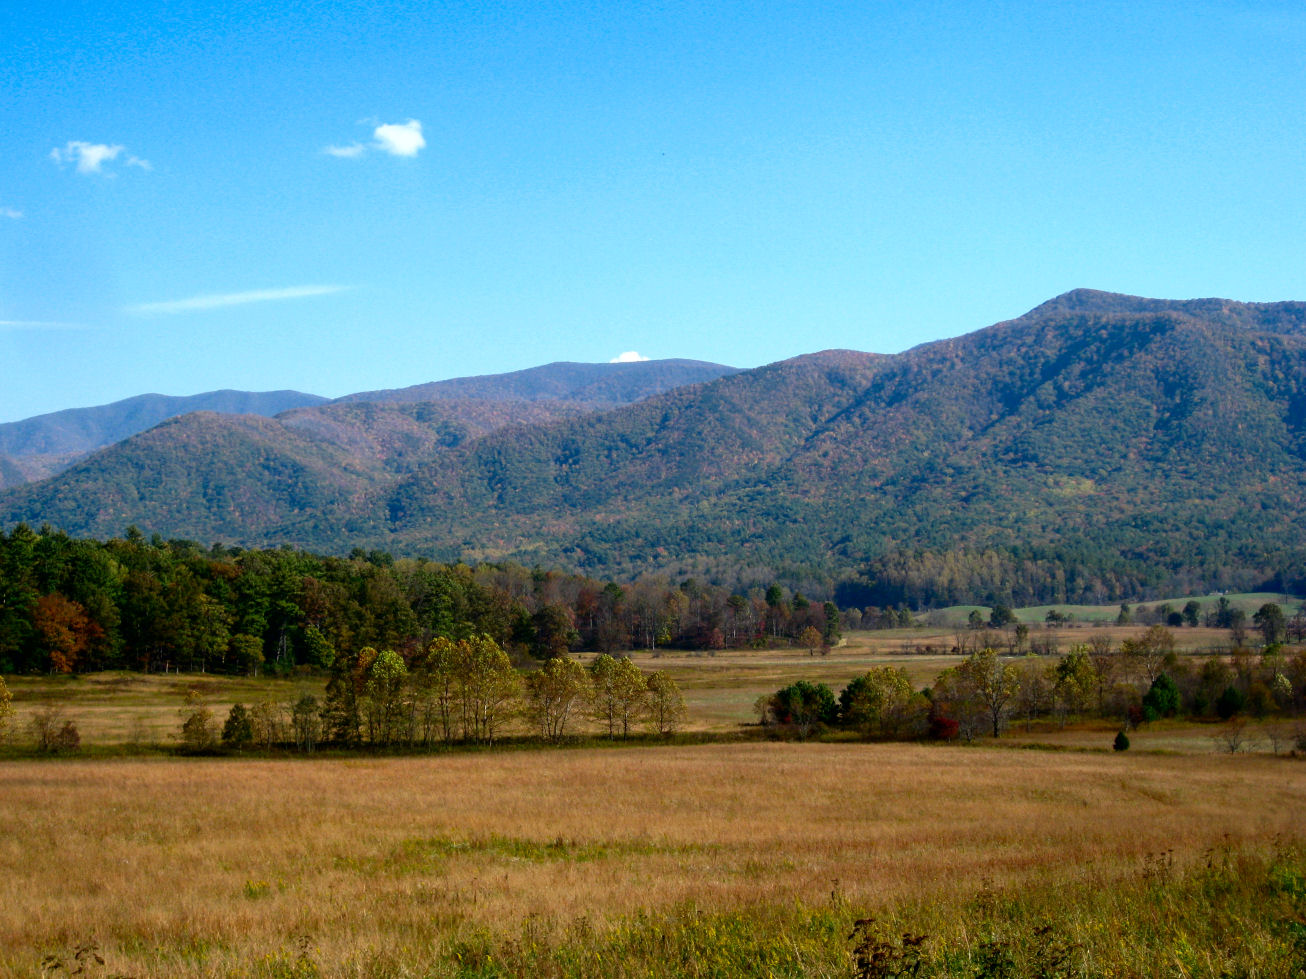 Hd Wallpapers Cades Cove Great Smoky Mountains 1920 X 1200 607 Kb Jpeg 1306x979